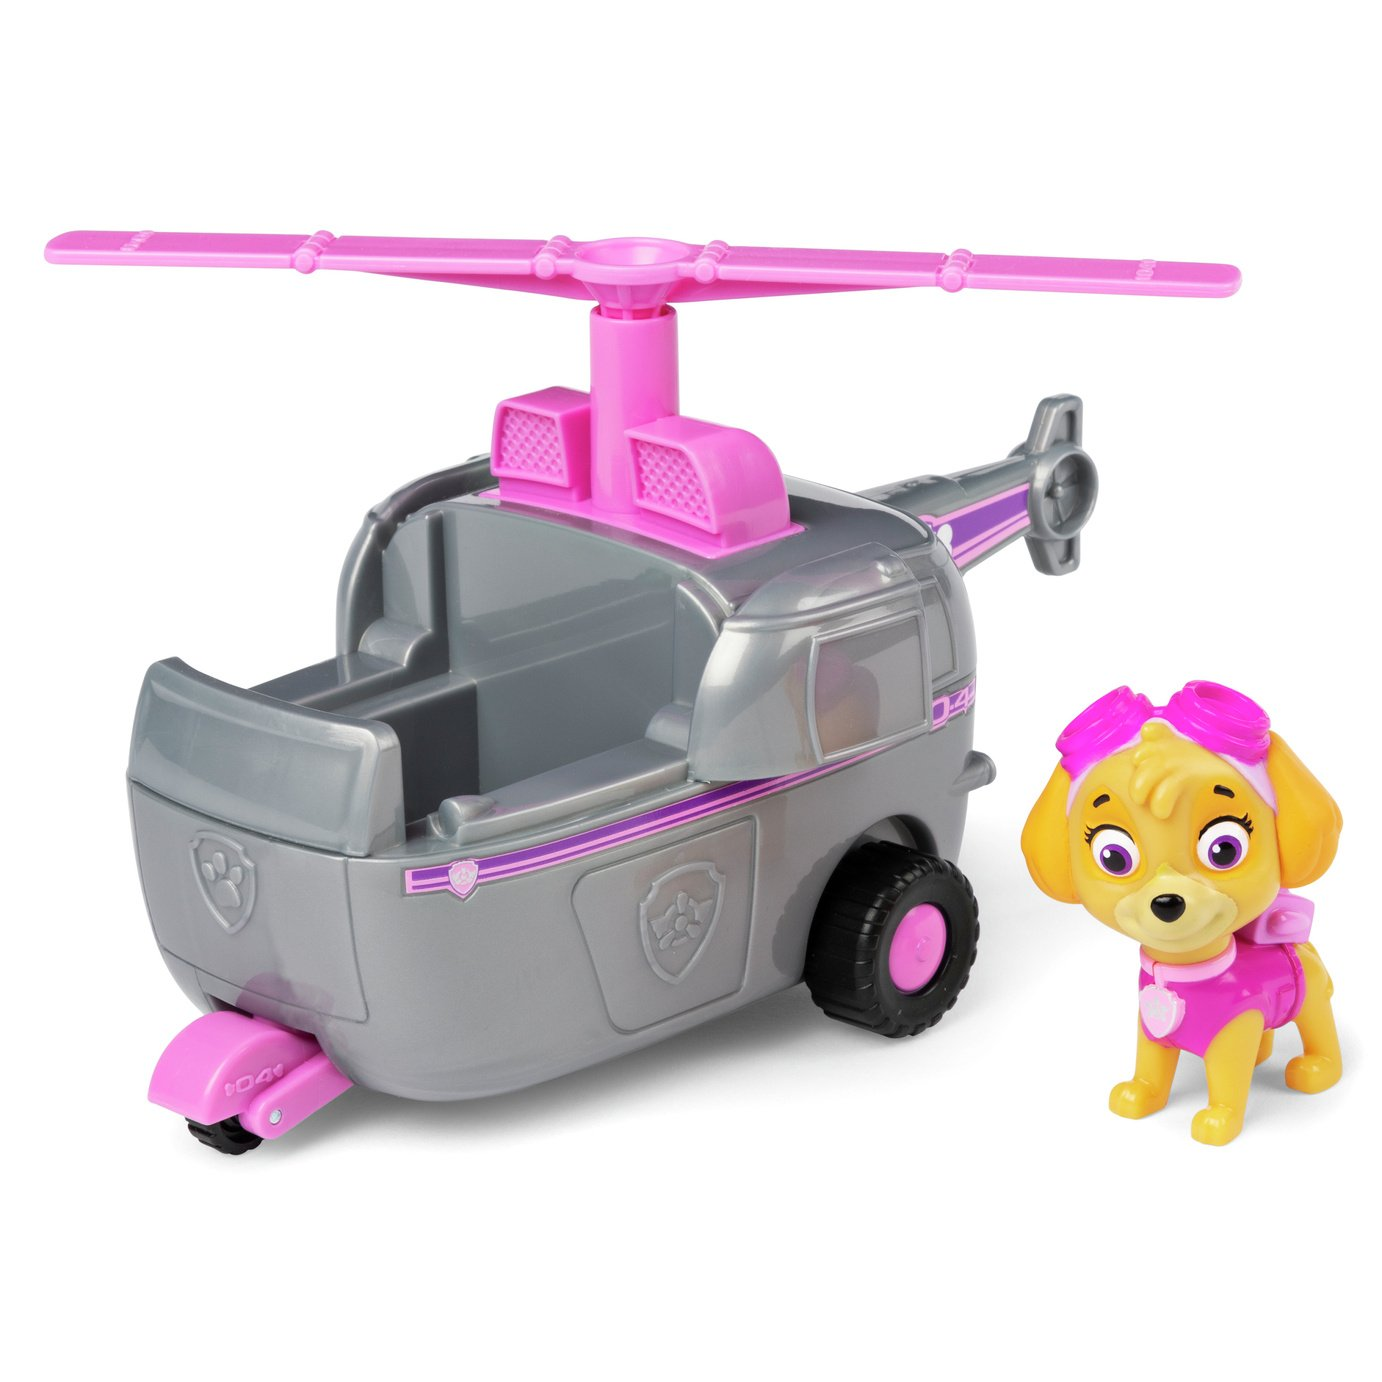 PAW Patrol Skye's Flyin' Vehicles.